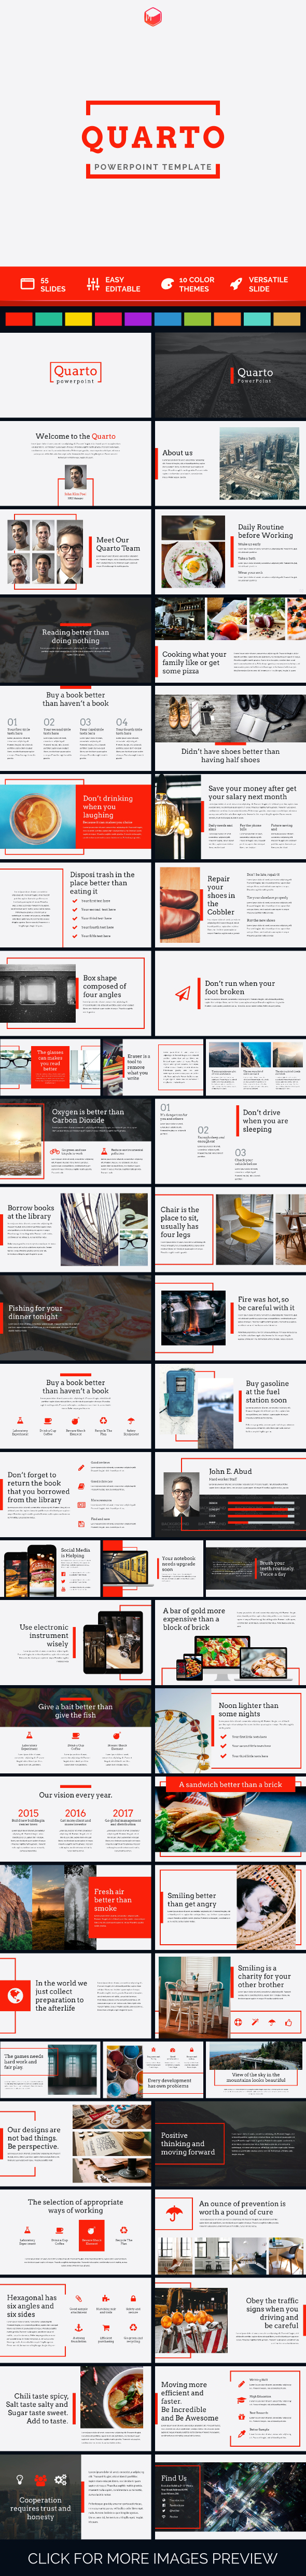 Quarto - PowerPoint Template (PowerPoint Templates)